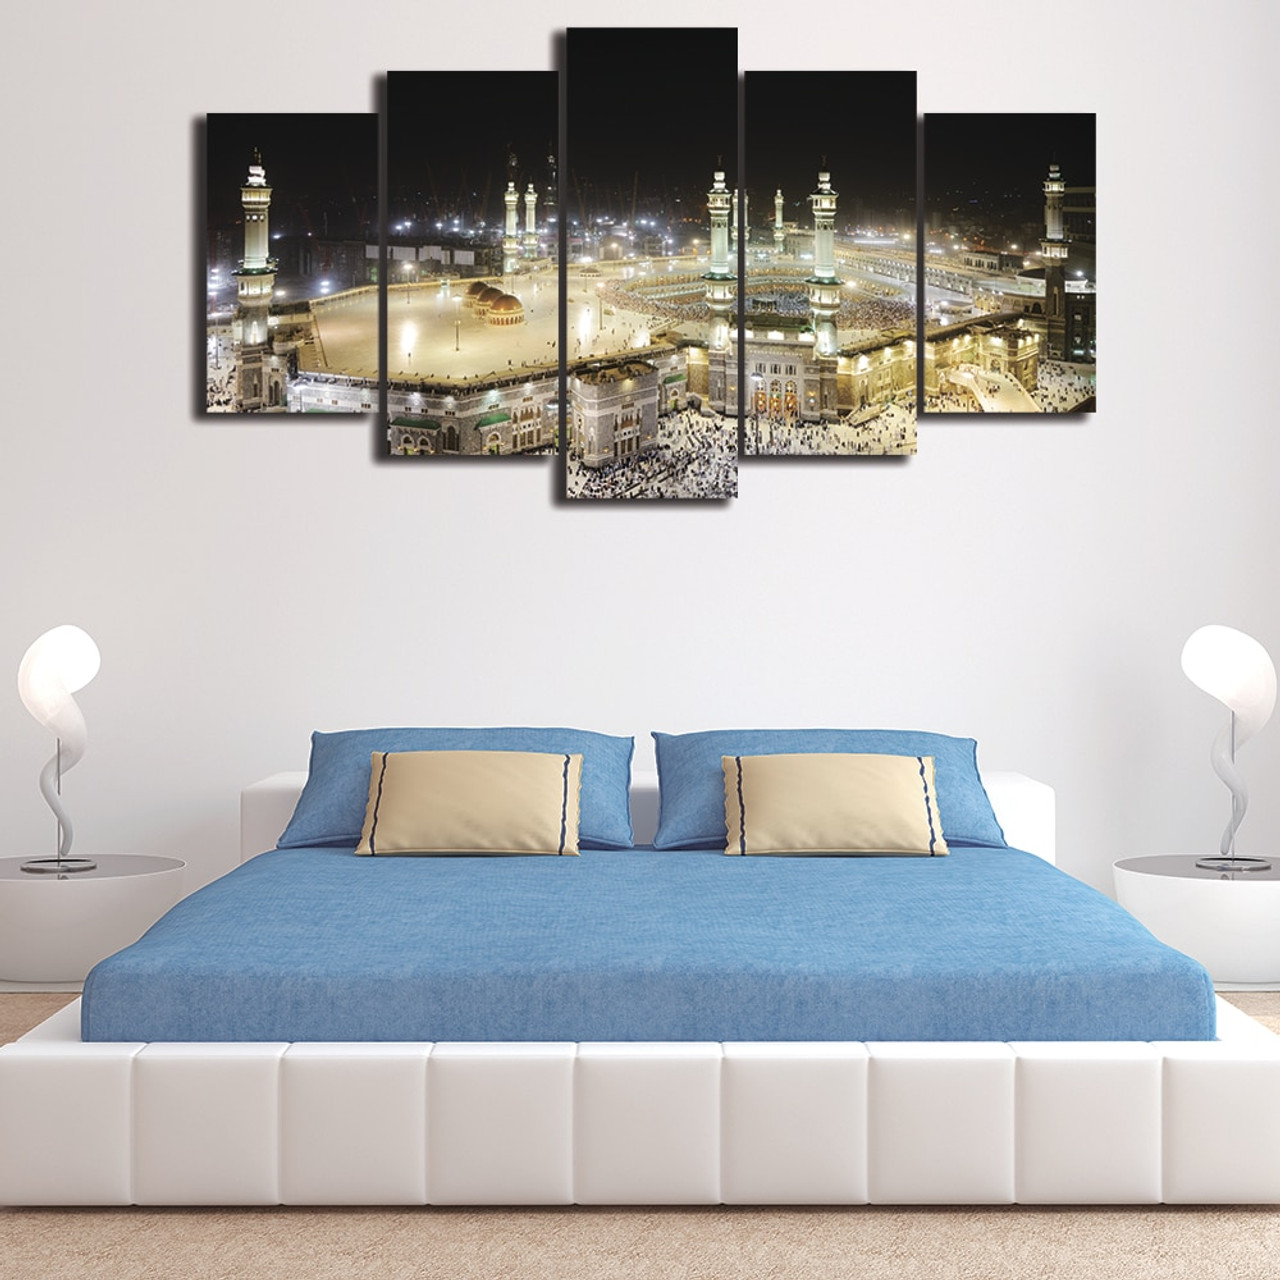 OnshopDeals.Com & Modern Home Wall Decor Frames Modular Pictures HD Printed 5 Panel Islamic Muslim Mosque Landscape Painting On Canvas Art PENGDA